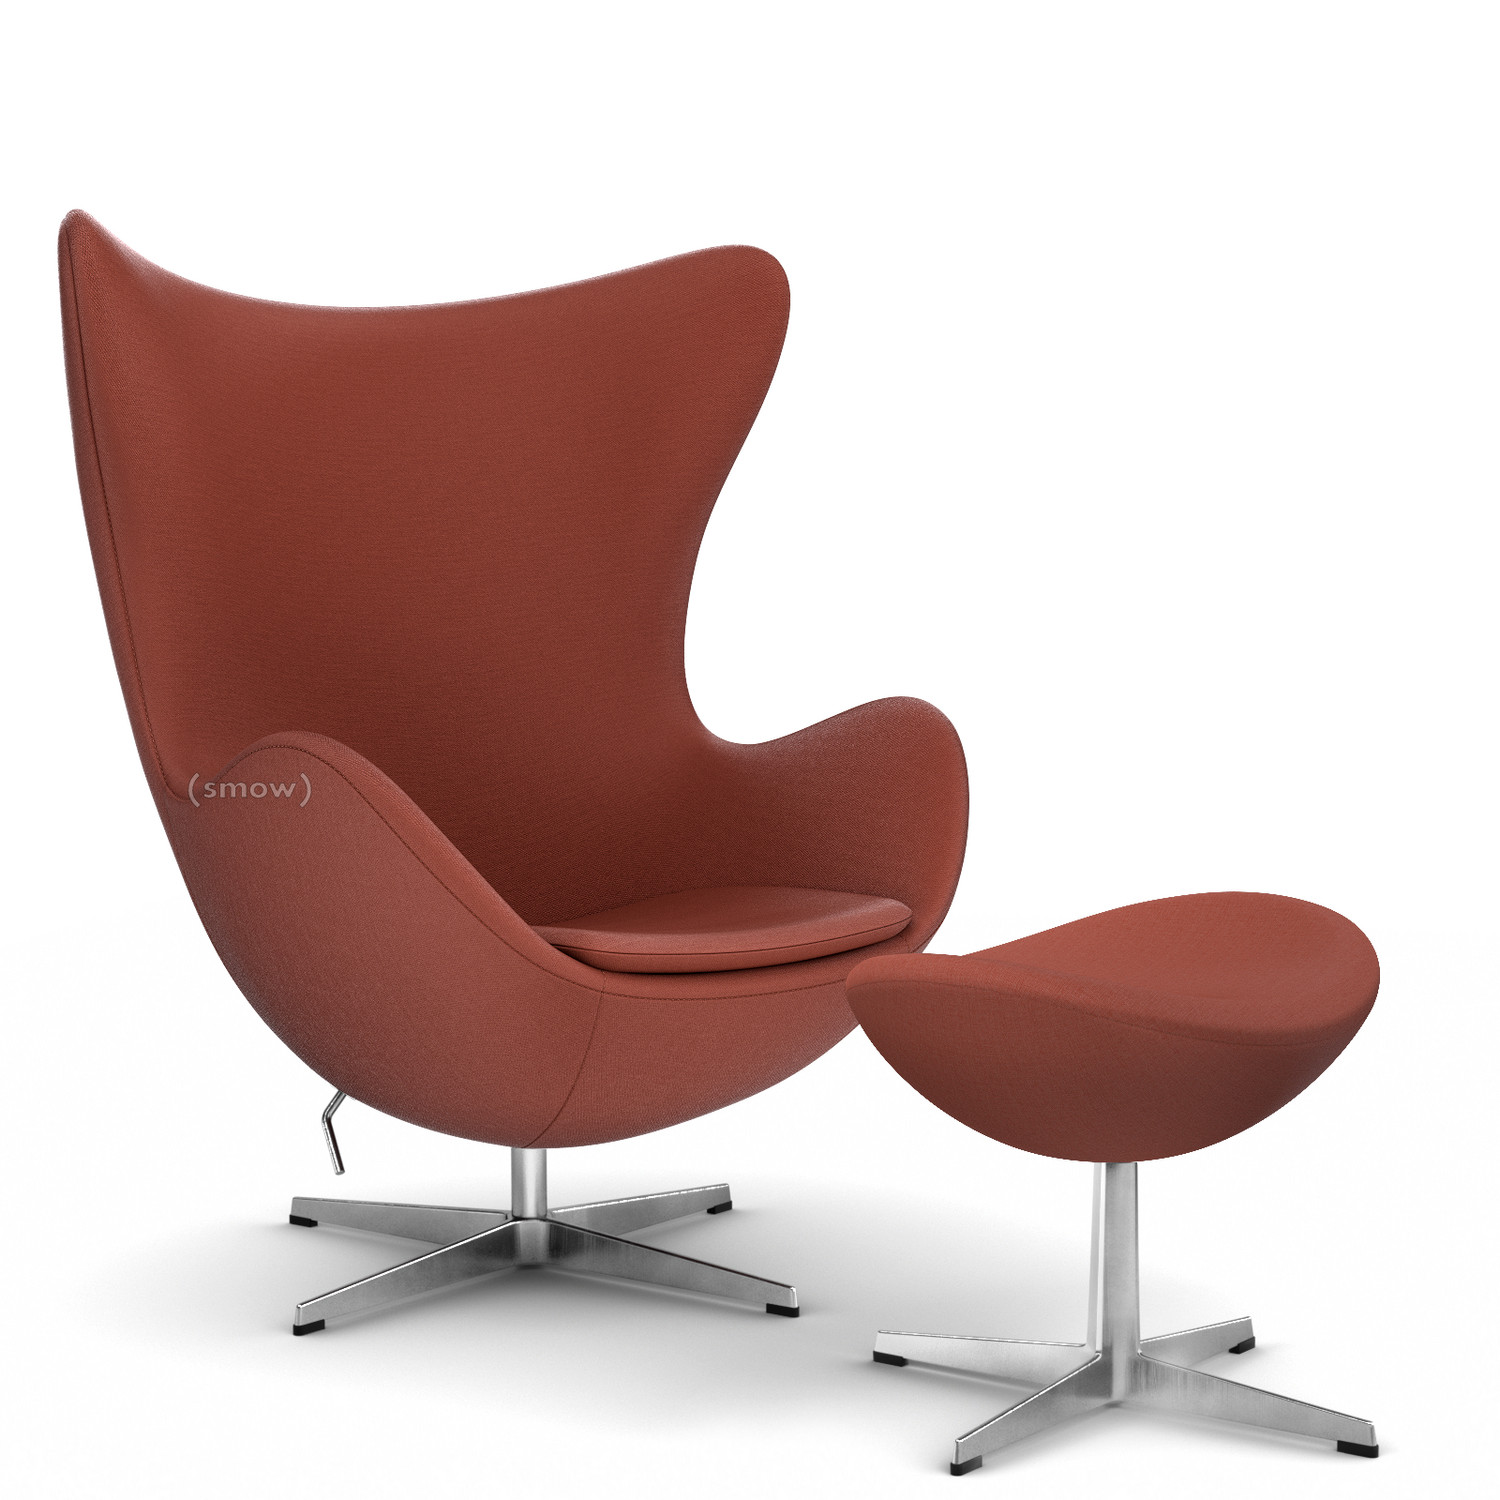 fritz hansen sessel ro 10, fritz hansen egg chair, fritz hansen colours, orange, with footstool, Design ideen